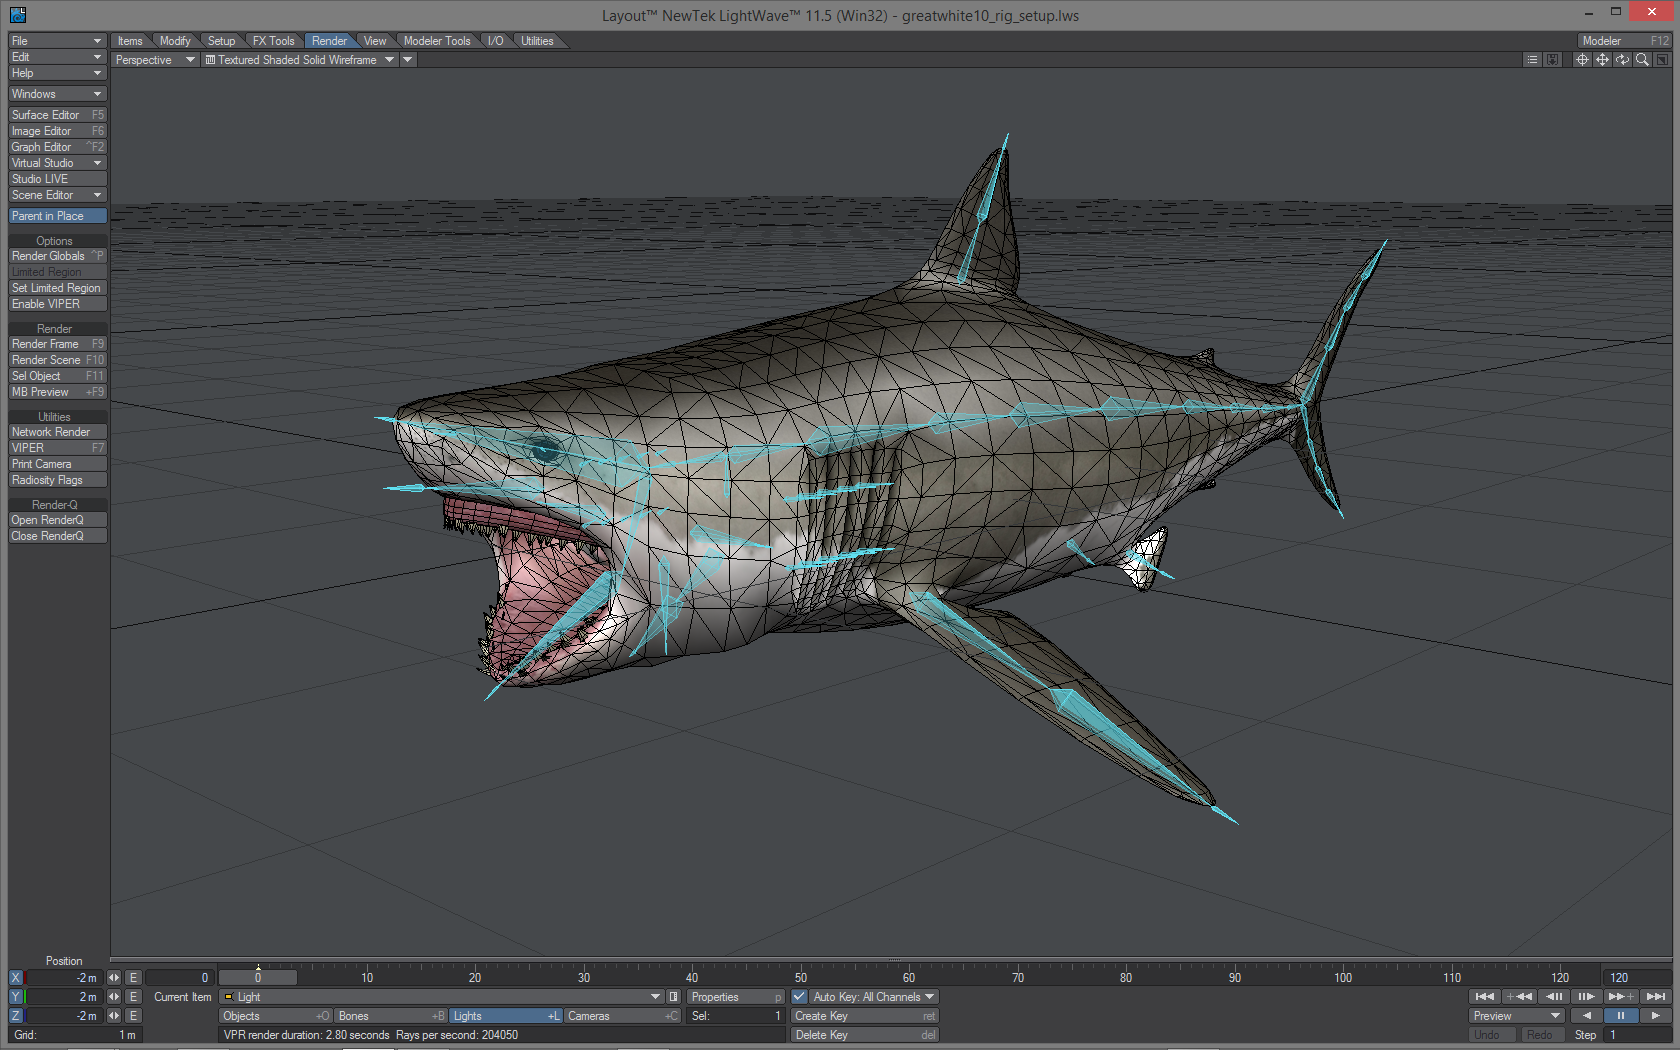 Restyled Great White inside Lightwave